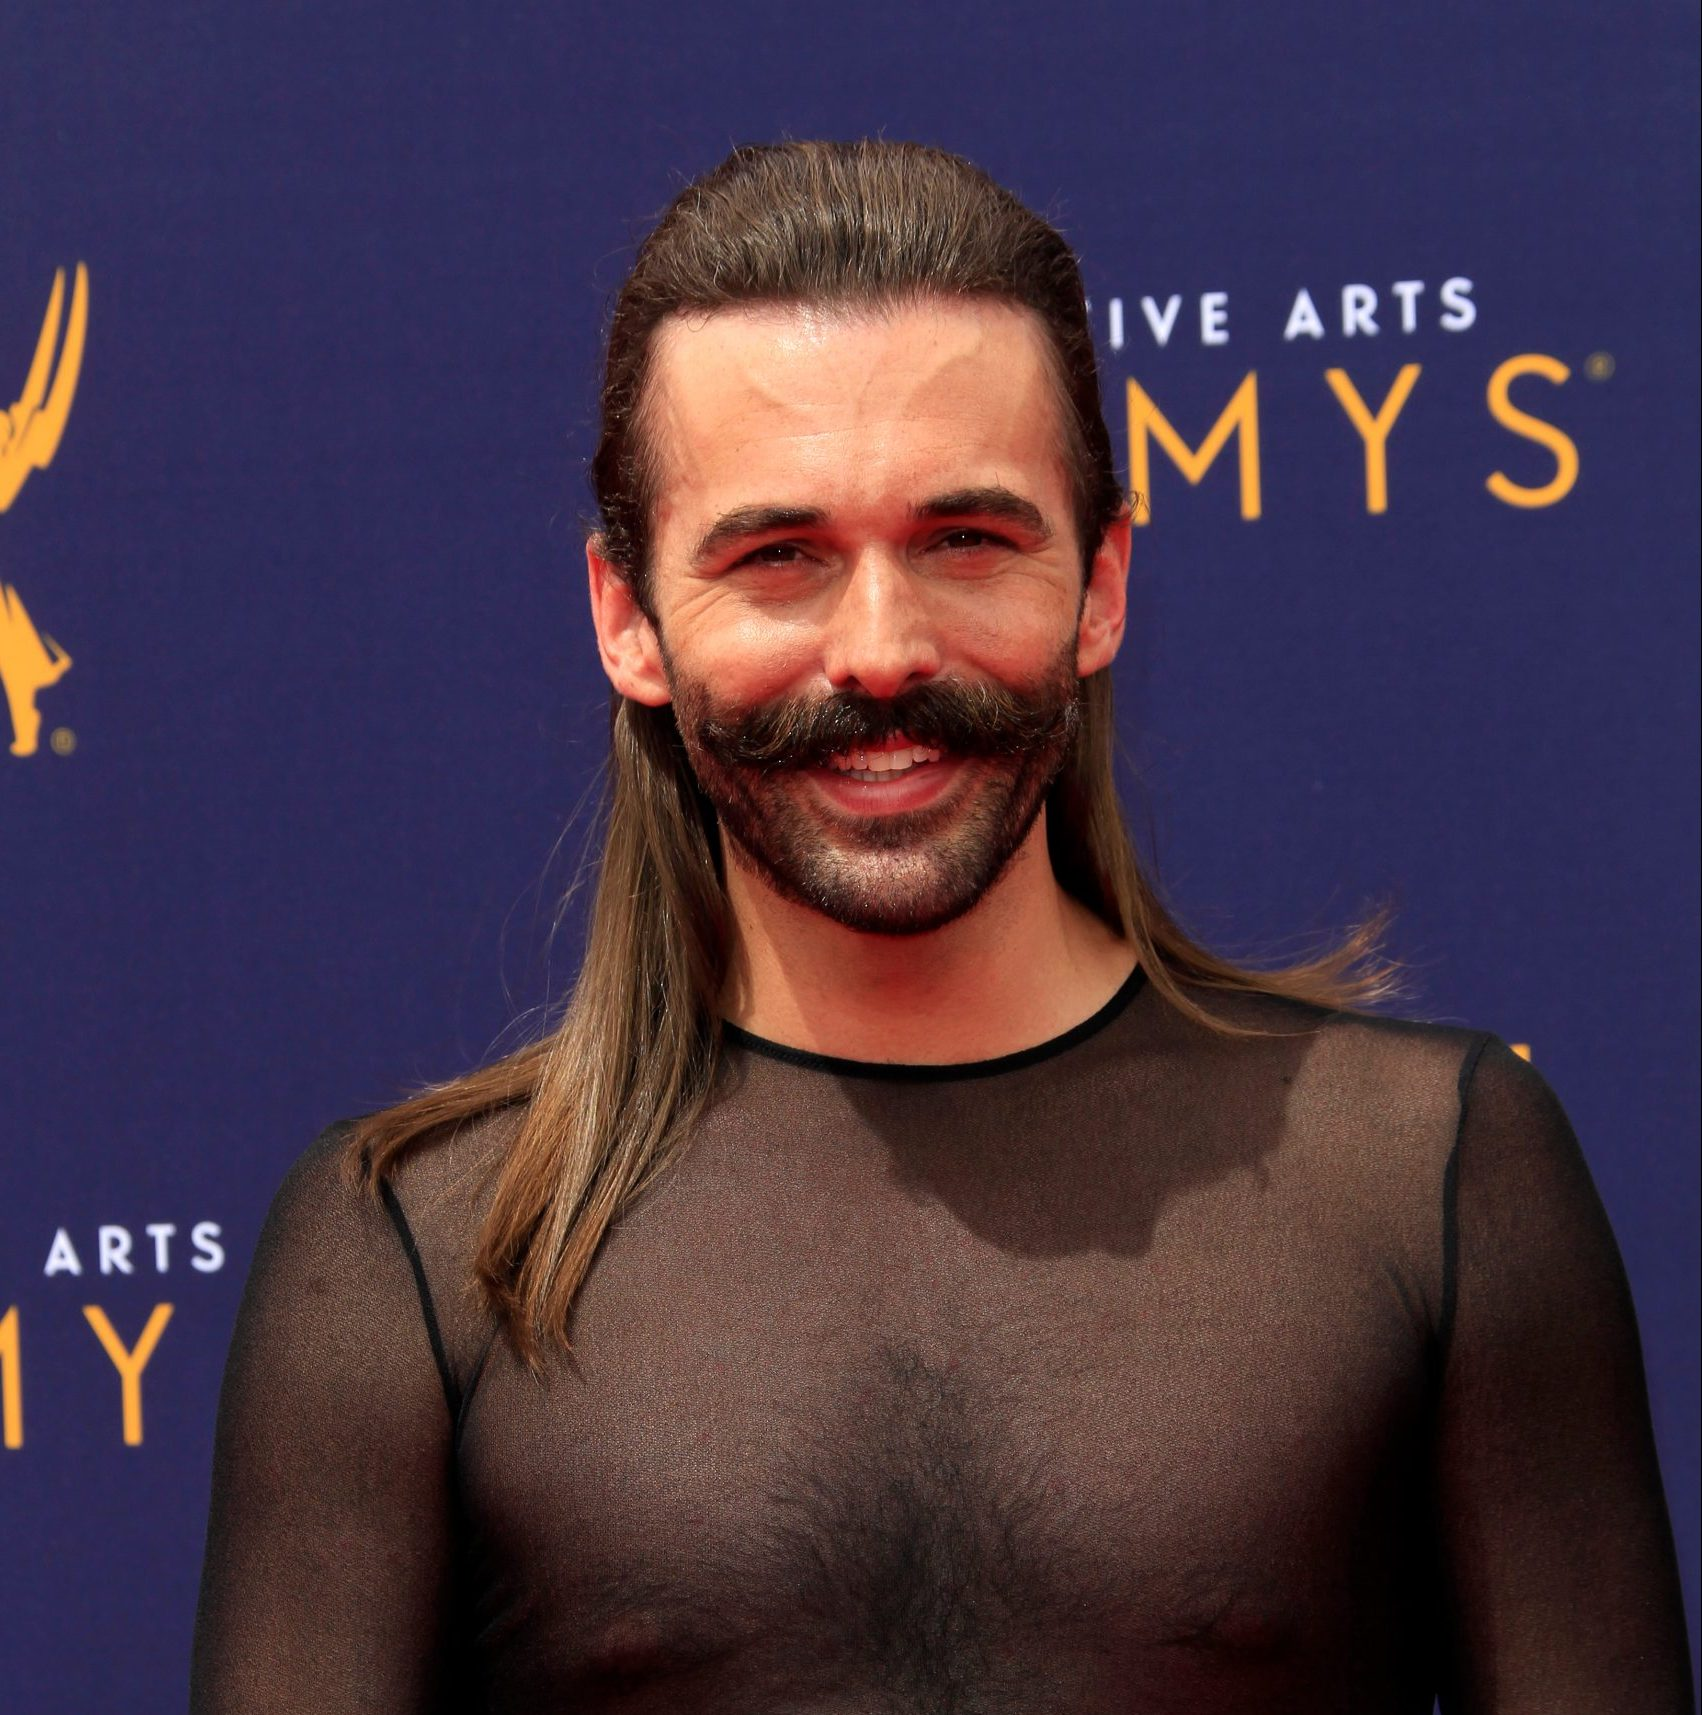 Jonathan Van Ness smiles at a red carpet event. He wears a sheer black top. His hair is half up, slicked back in a pony tail. The rest is sitting straight on his shoulders. He has a luscious, thick moustache and a short beard.